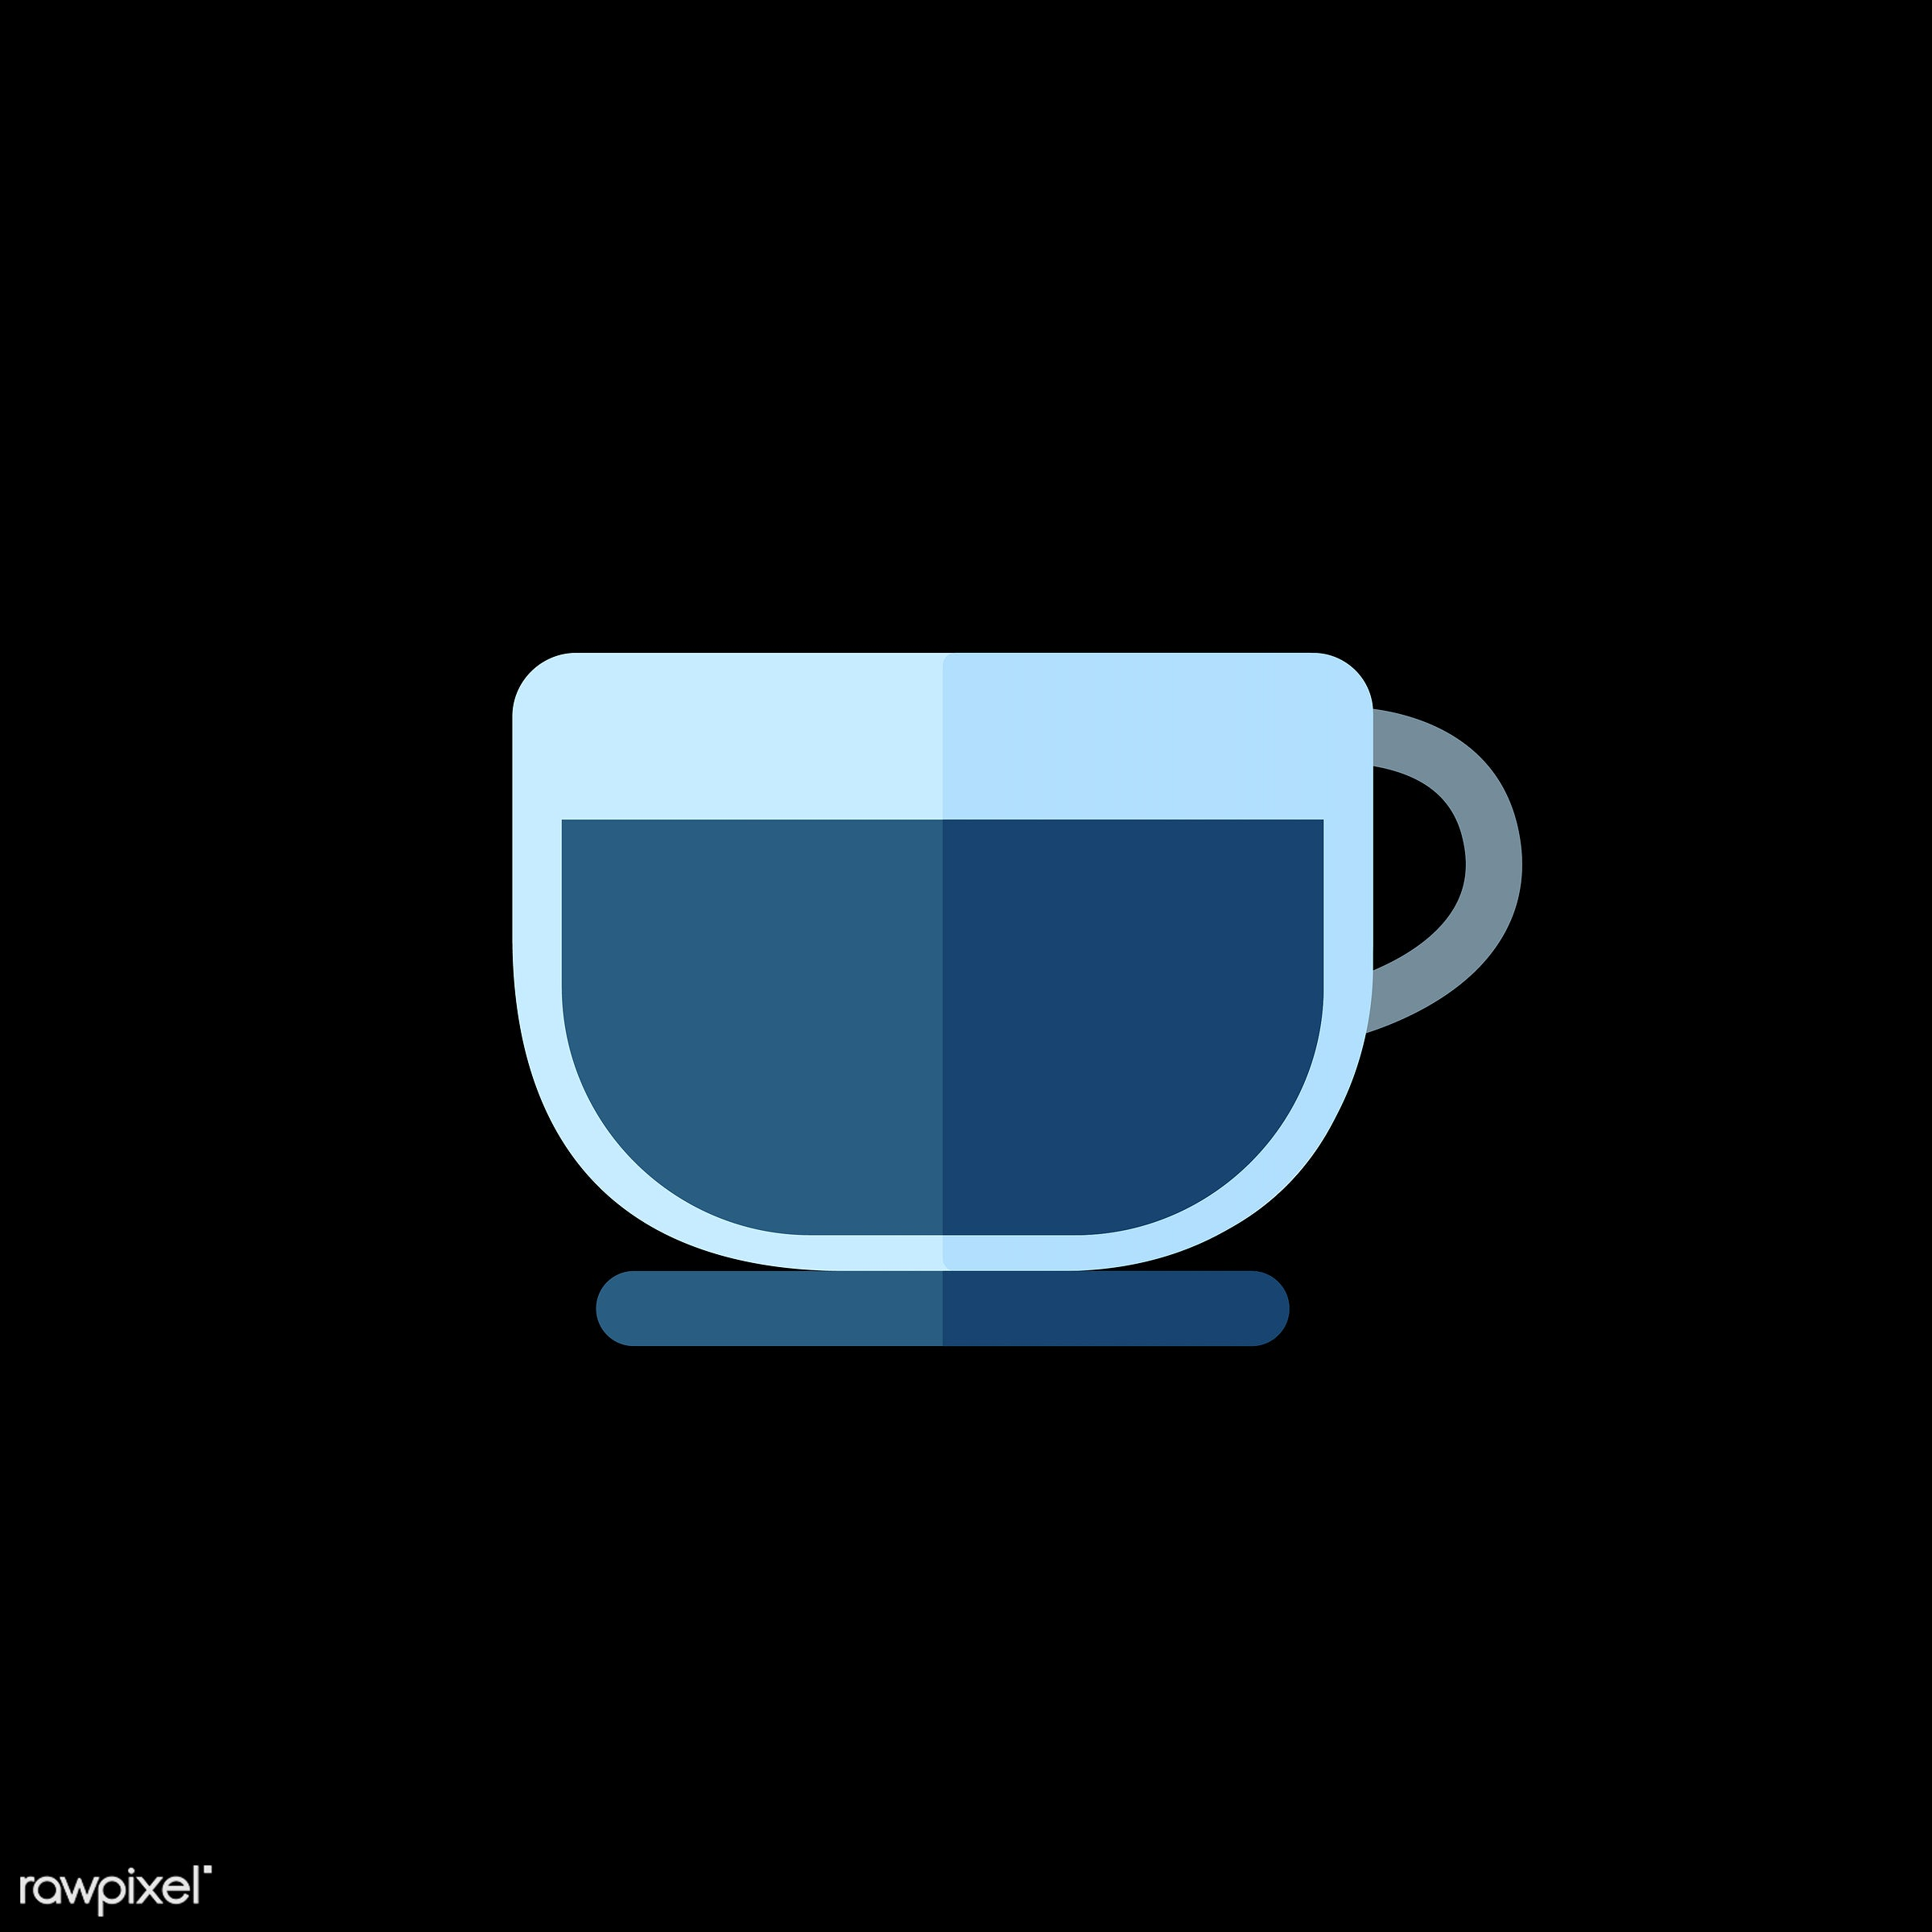 vector, graphic, illustration, icon, symbol, colorful, cute, drink, beverage, water, blue, coffee, coffee cup, coffee mug